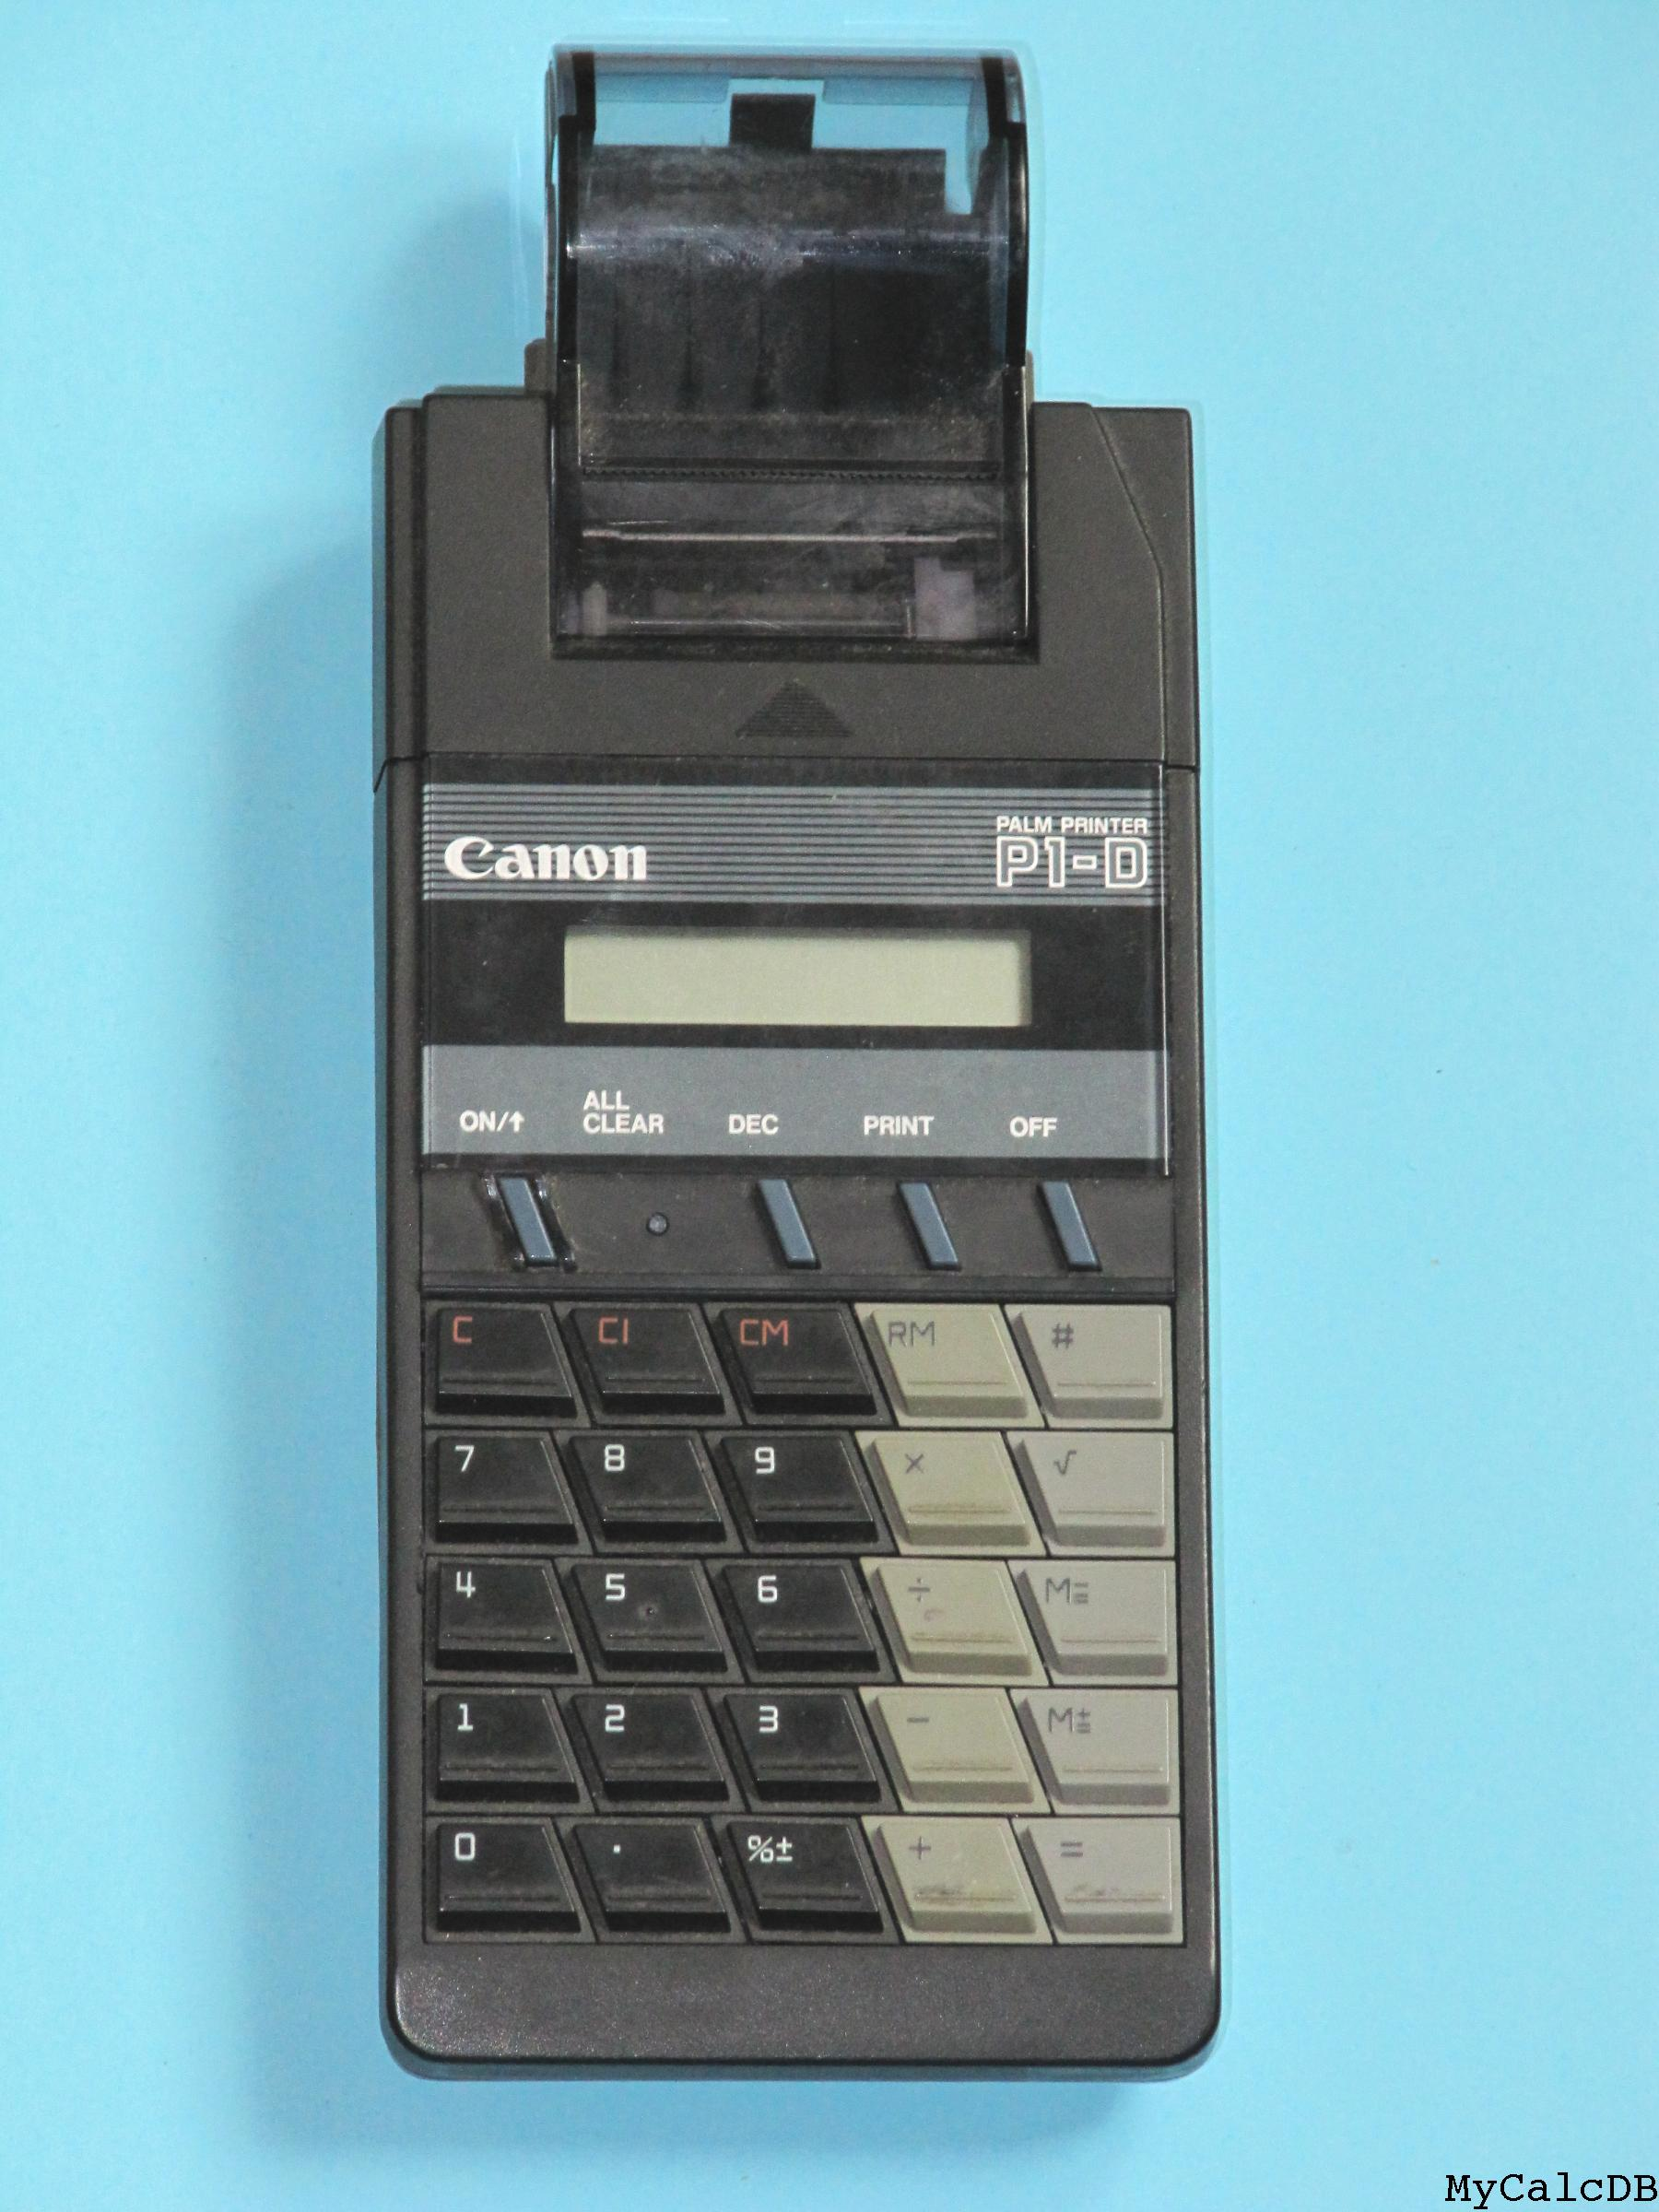 Canon PALM PRINTER P1-D